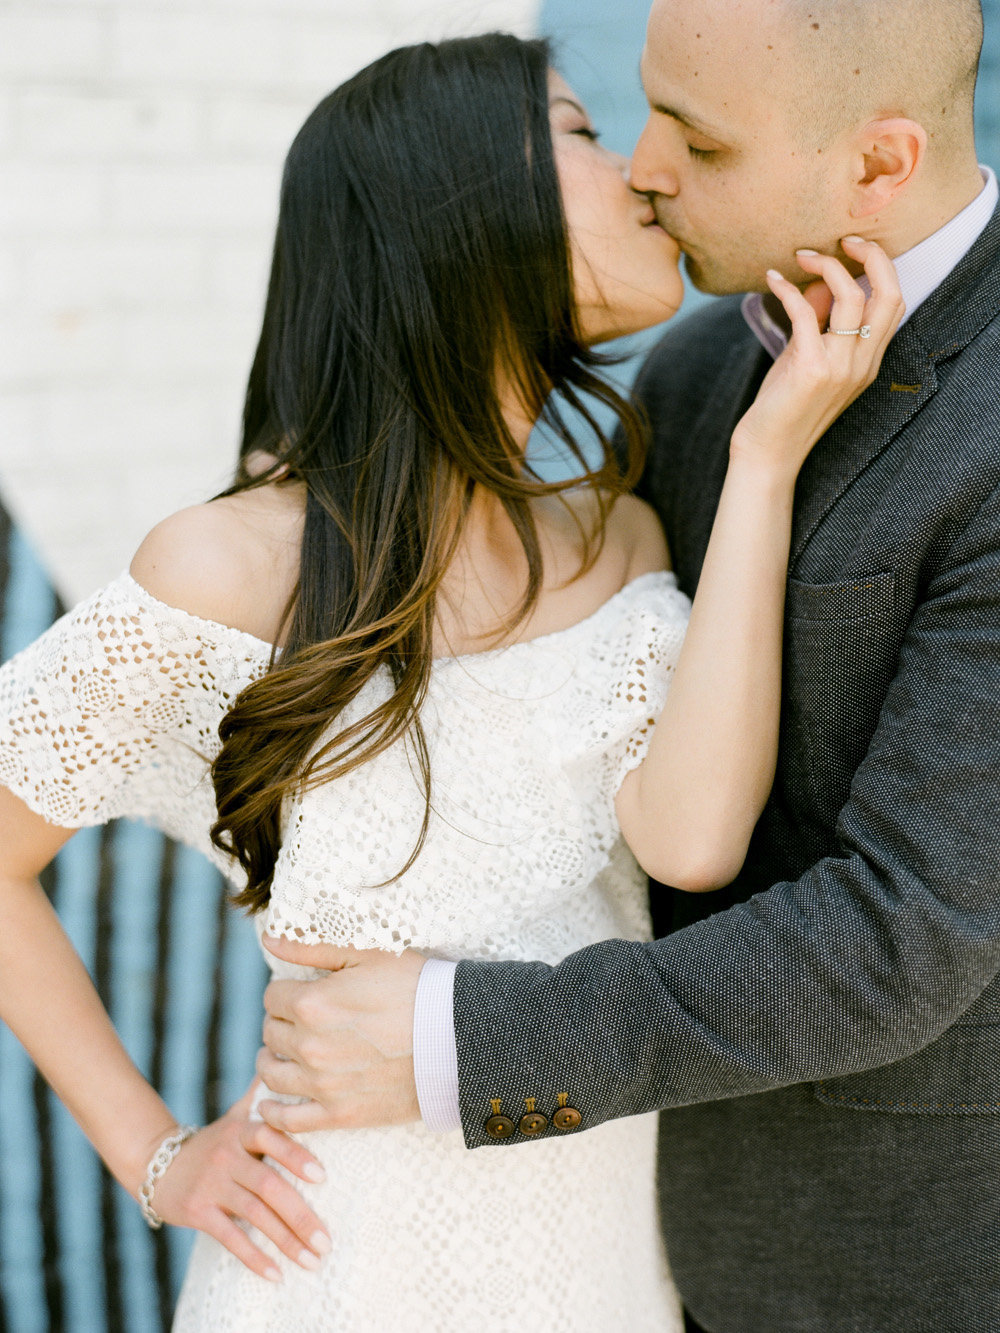 mary-dougherty-engagement-wedding-photographer-nyc-brooklyn-manhattan02